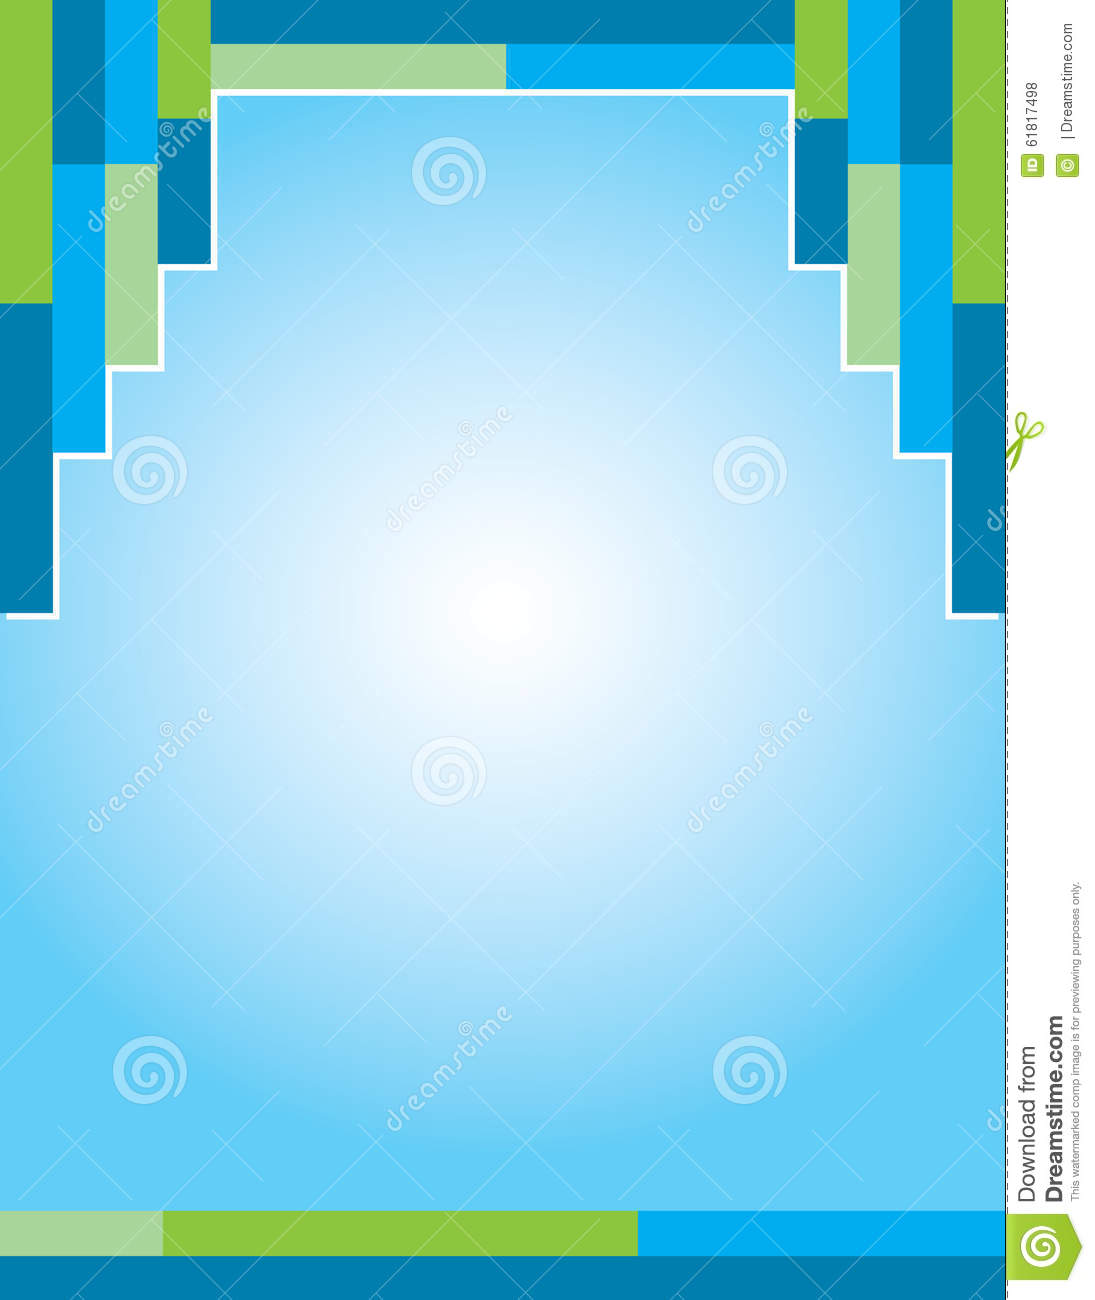 background brochure templates green blue brochure background stock illustration image